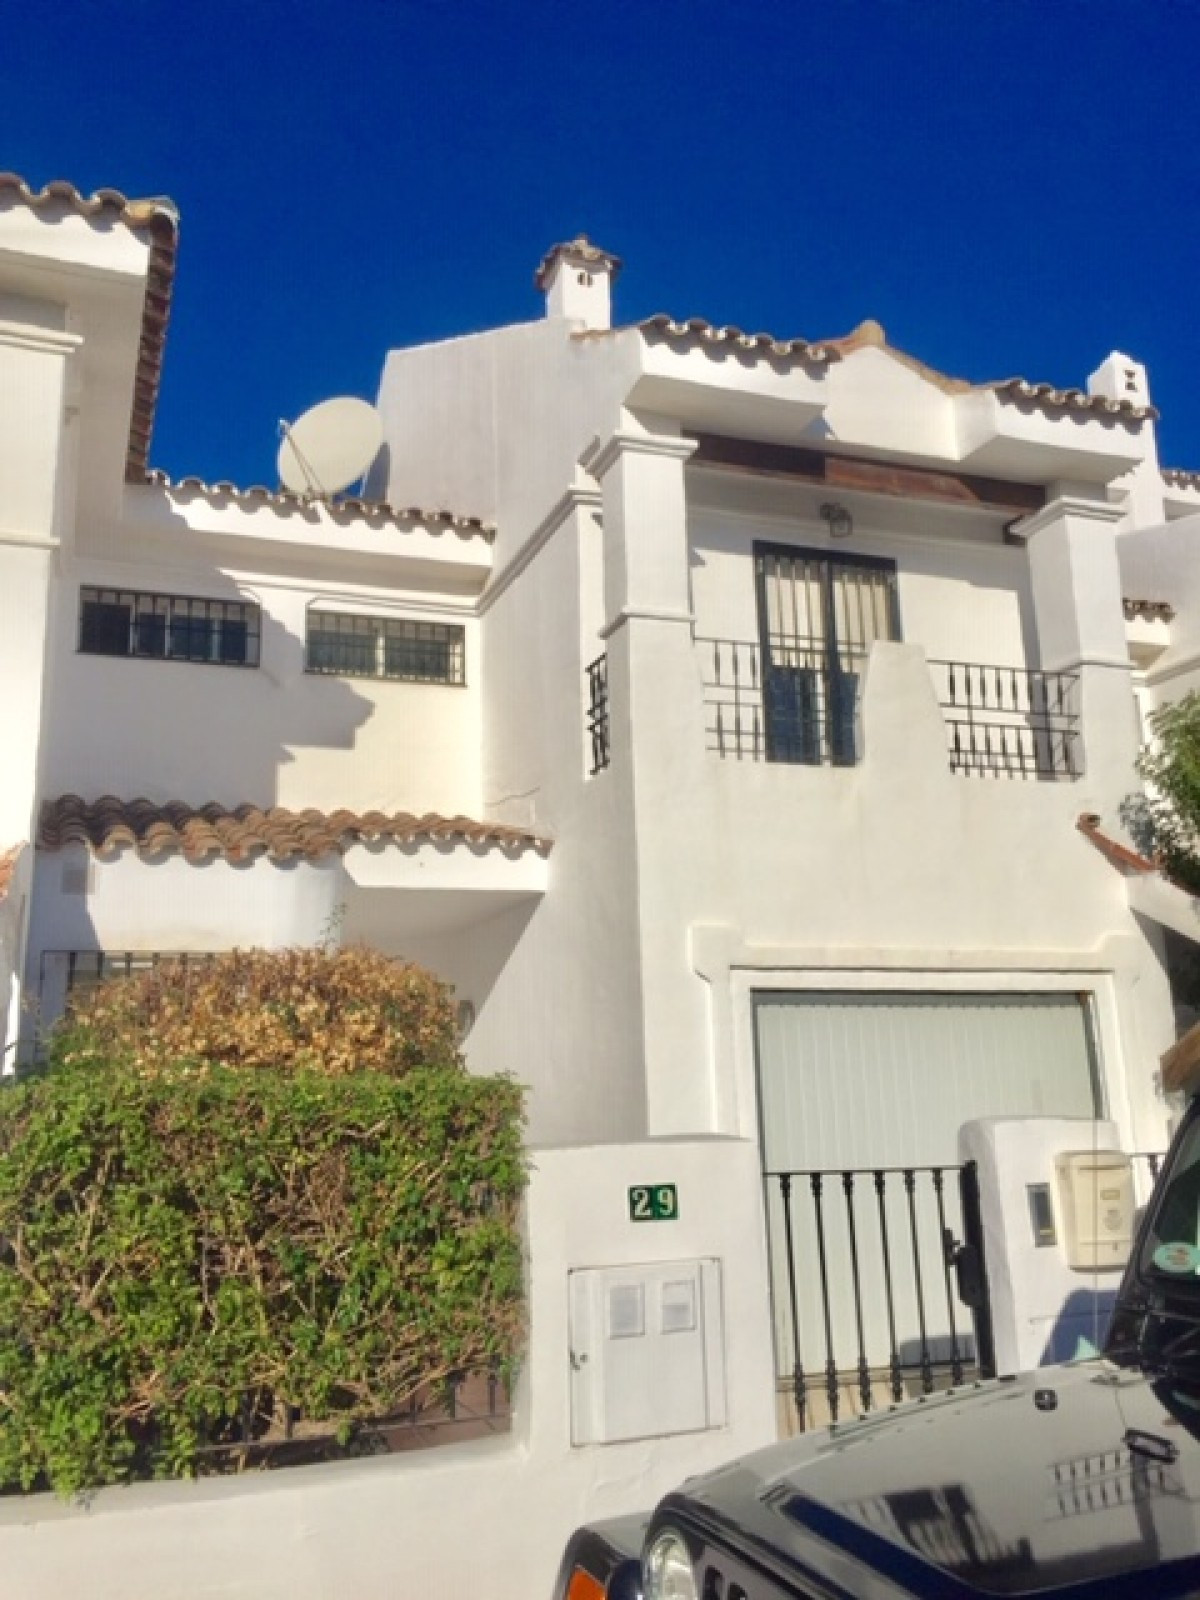 Nicely presented townhouse in Los Naranjos de Marbella situated in Nueva Andalucia with Puerto Banus, Spain